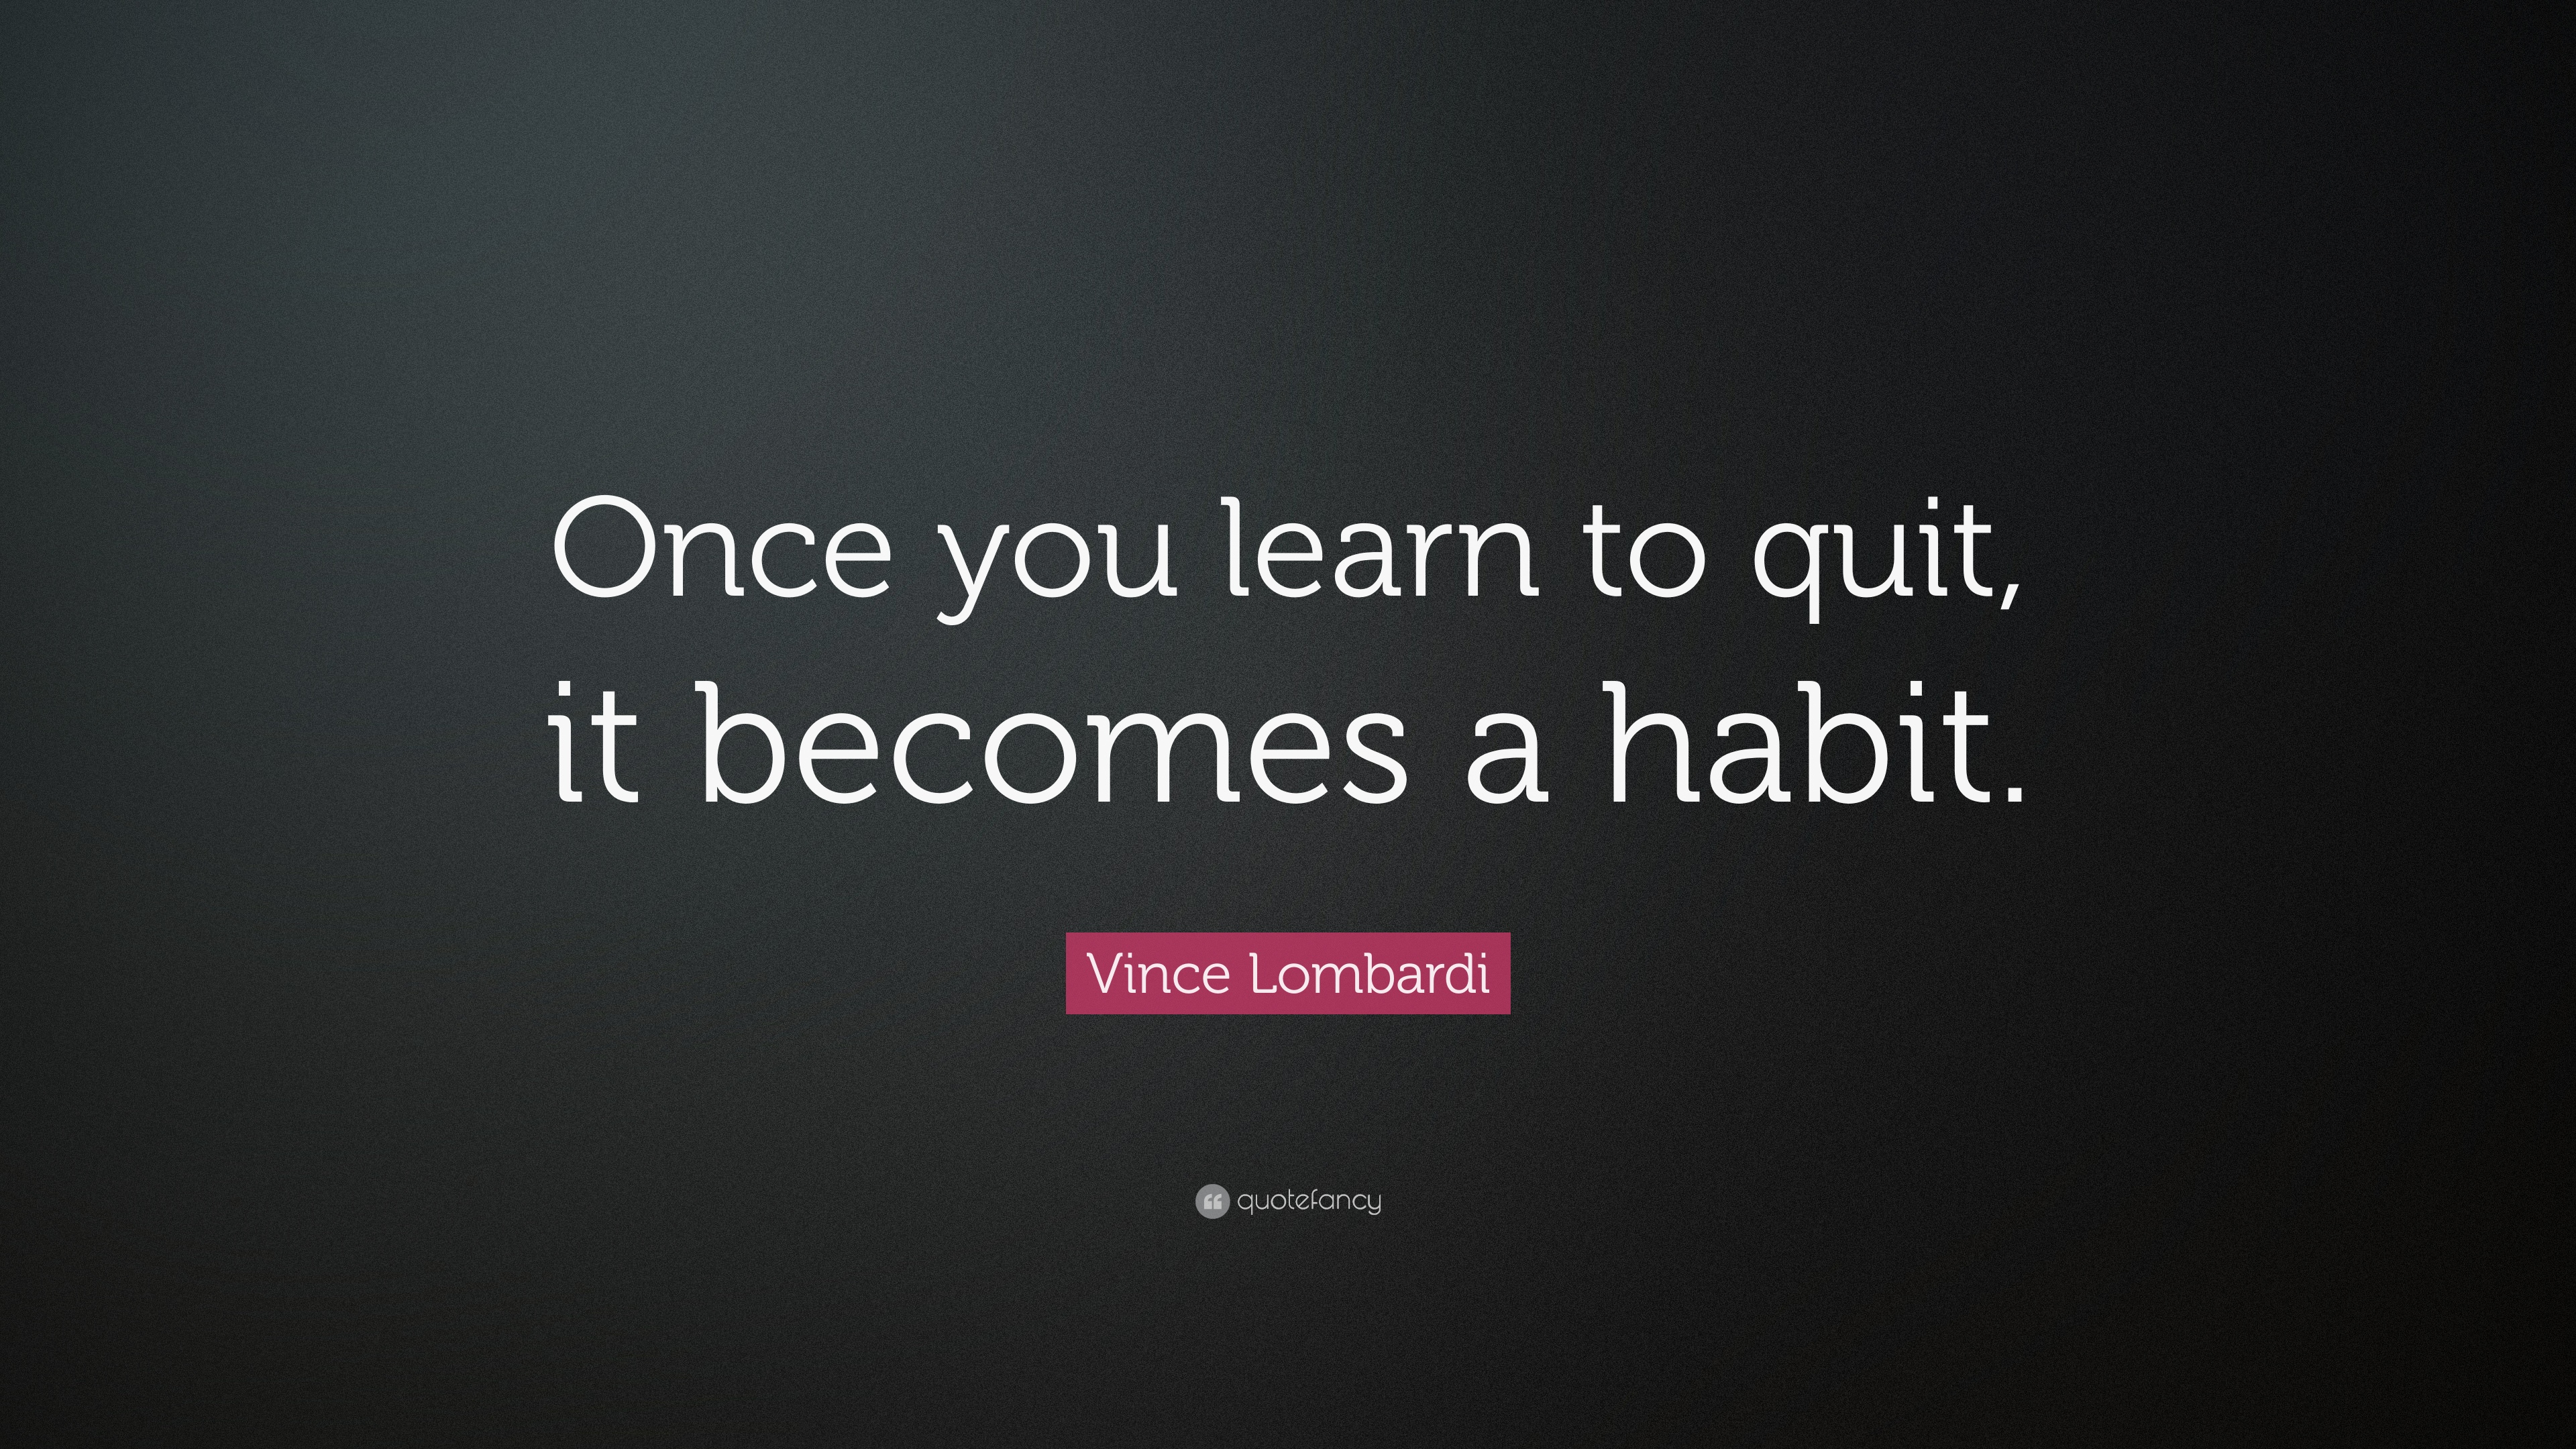 Habit Quotes Habit Quotes Brilliant 20 Quotes To Inspire You To Change Habits